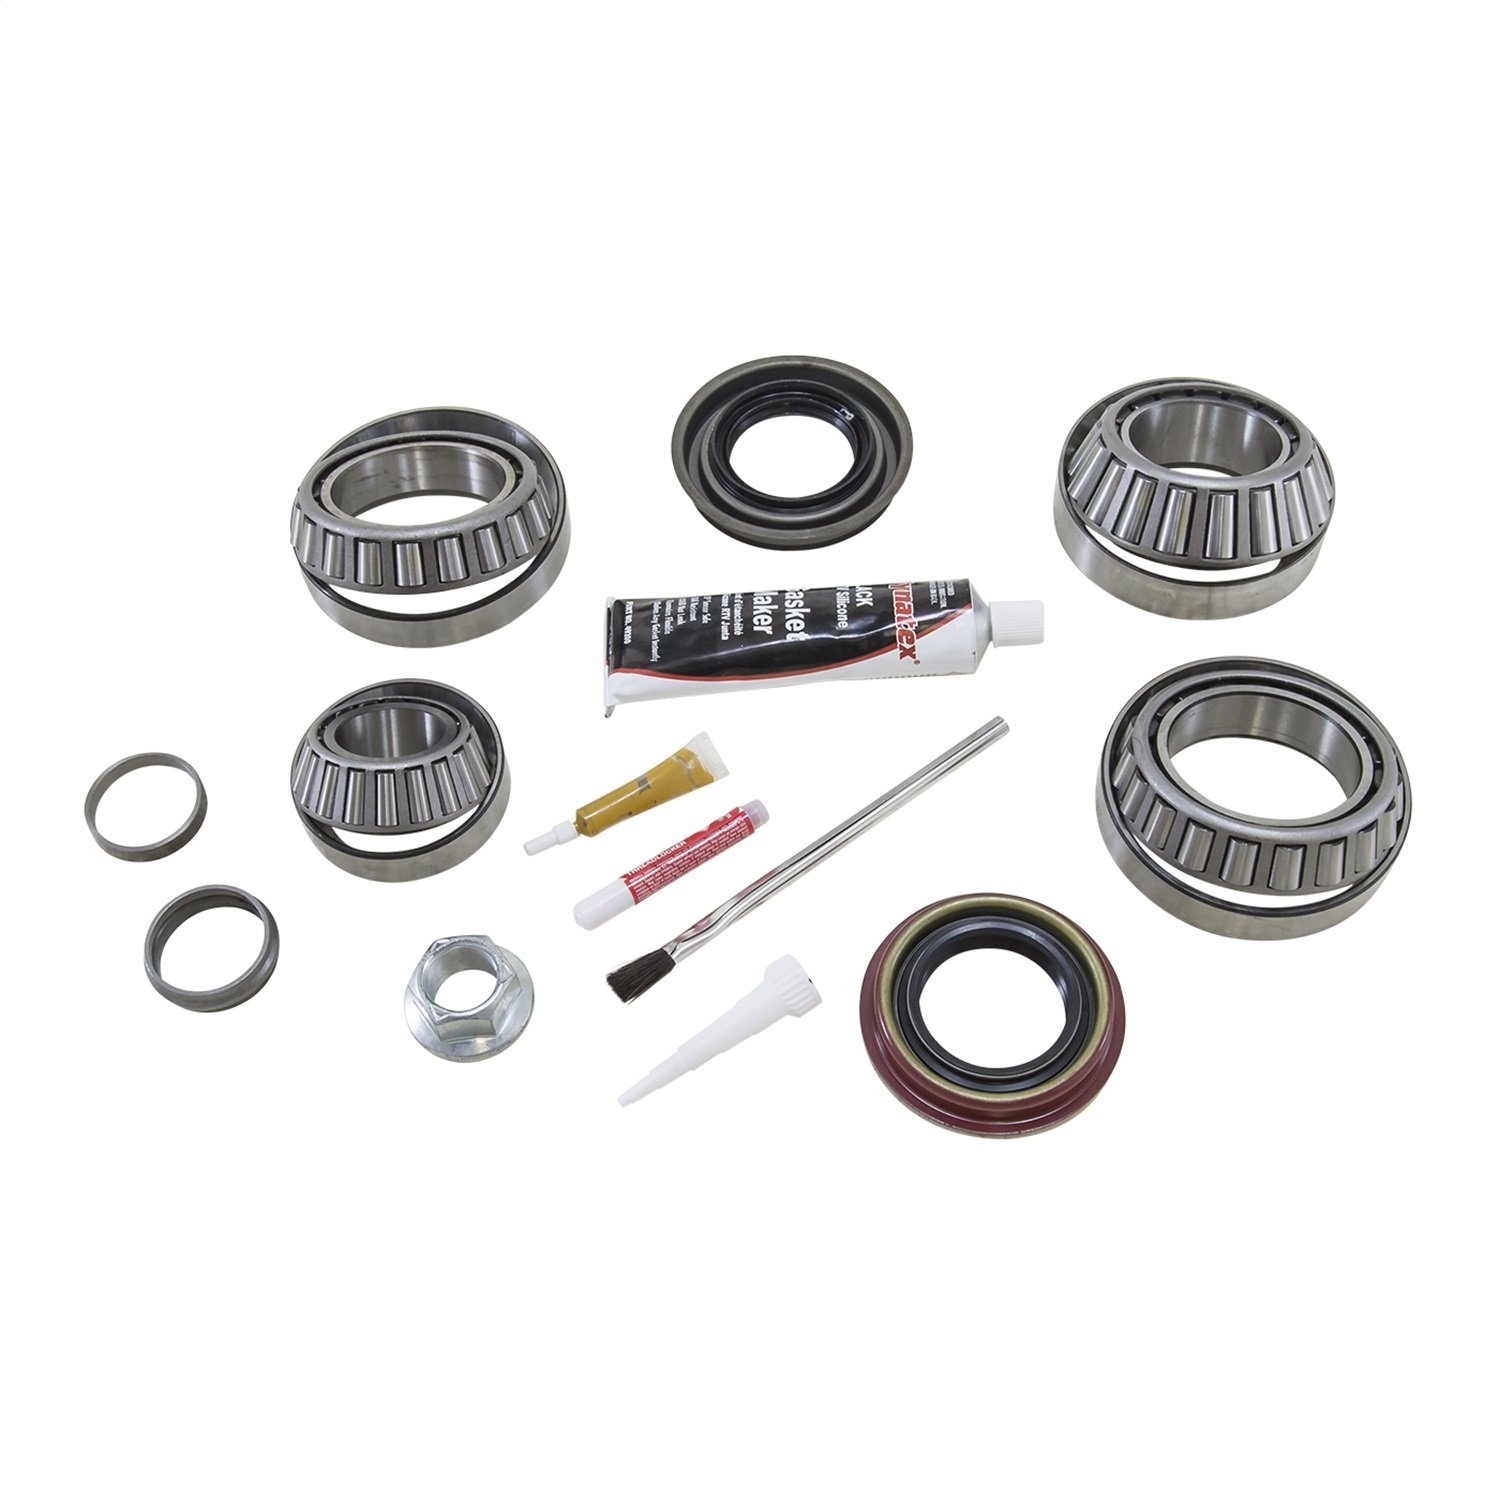 USA Standard Gear (ZBKF9.75-B) Bearing Kit for Ford 9.75'' Differential by USA Standard Gear